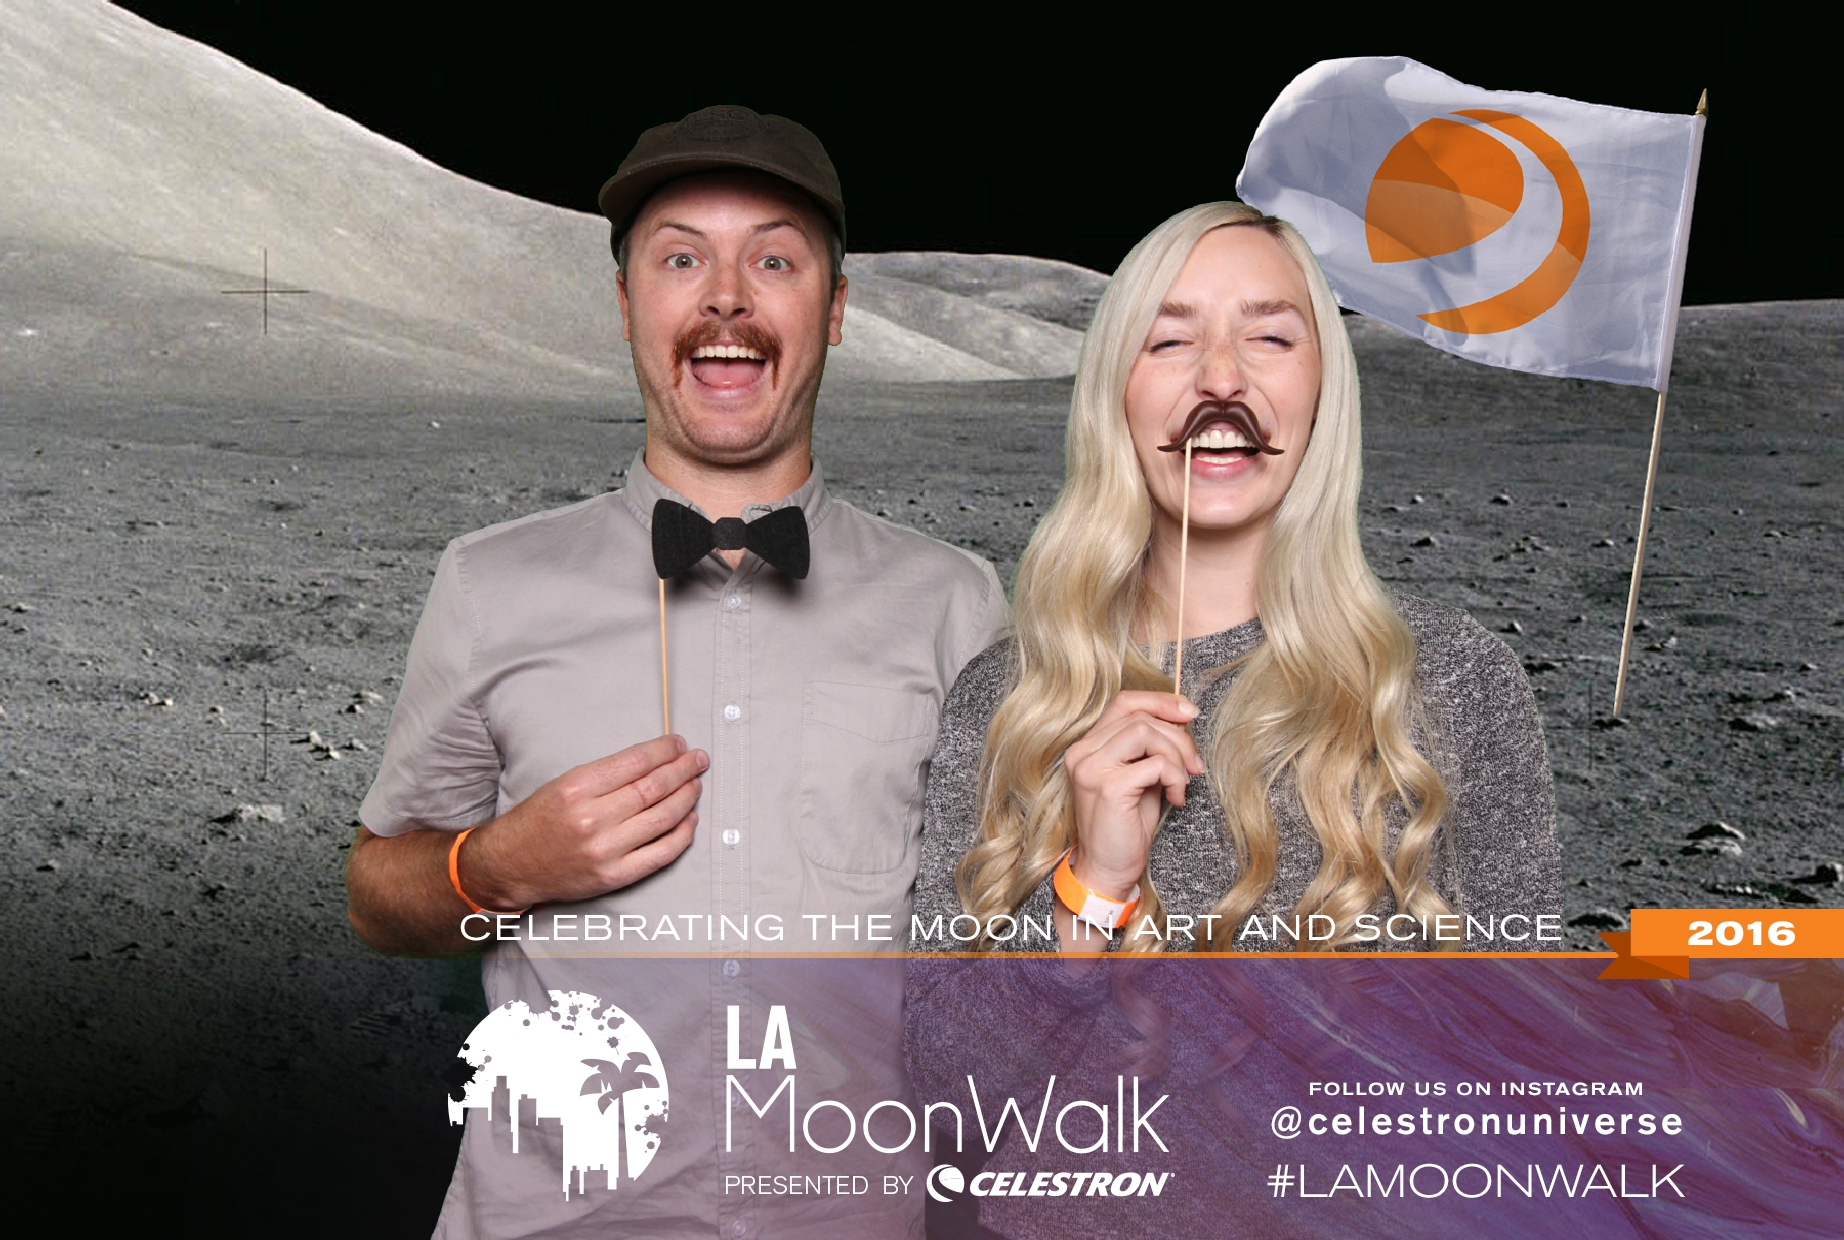 Celestron: LA Moonwalk